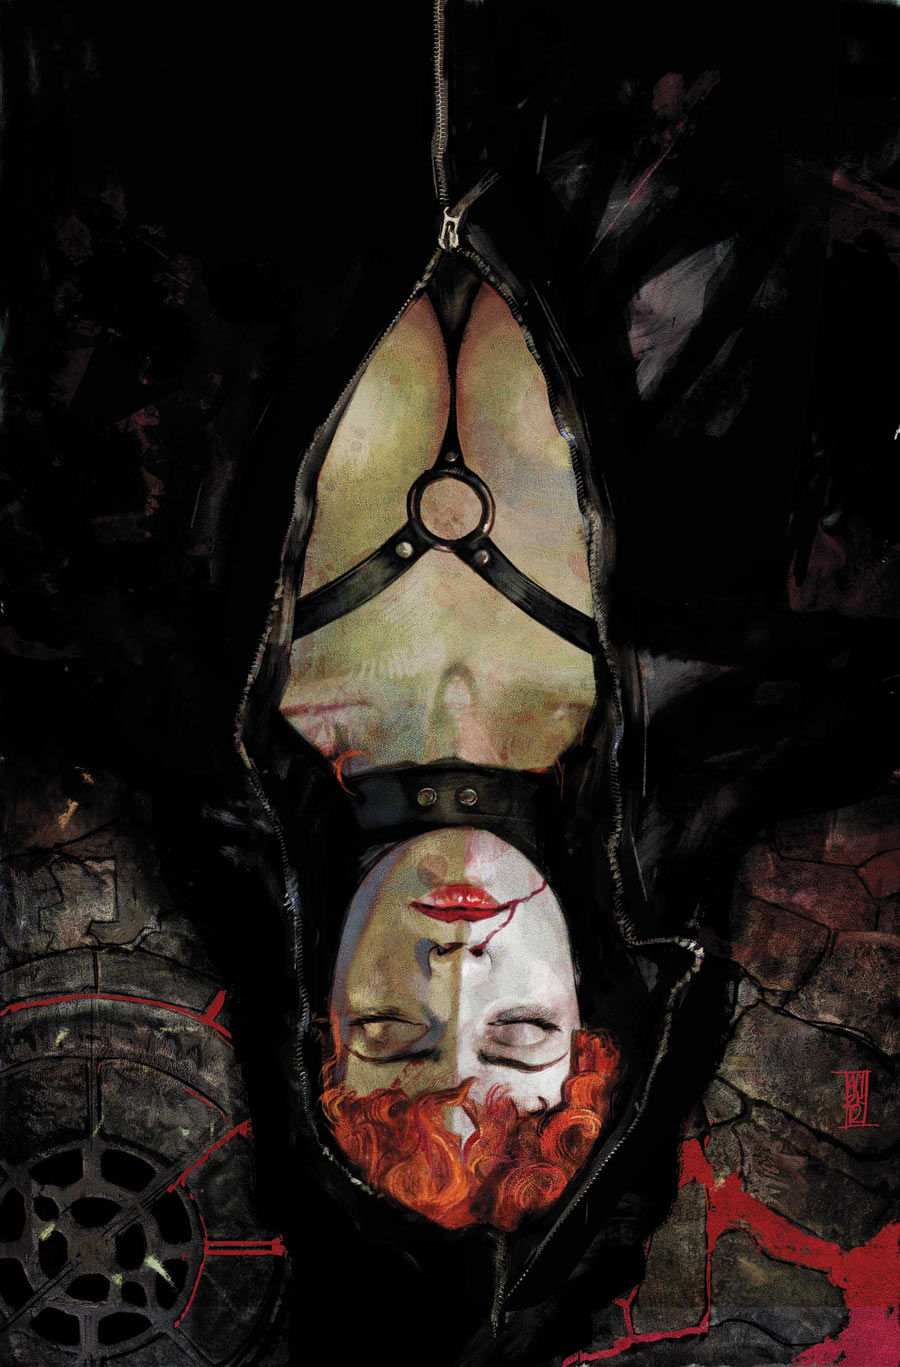 Daredevil: End of Days #7 (Marvel) - Artist: Alex Maleev